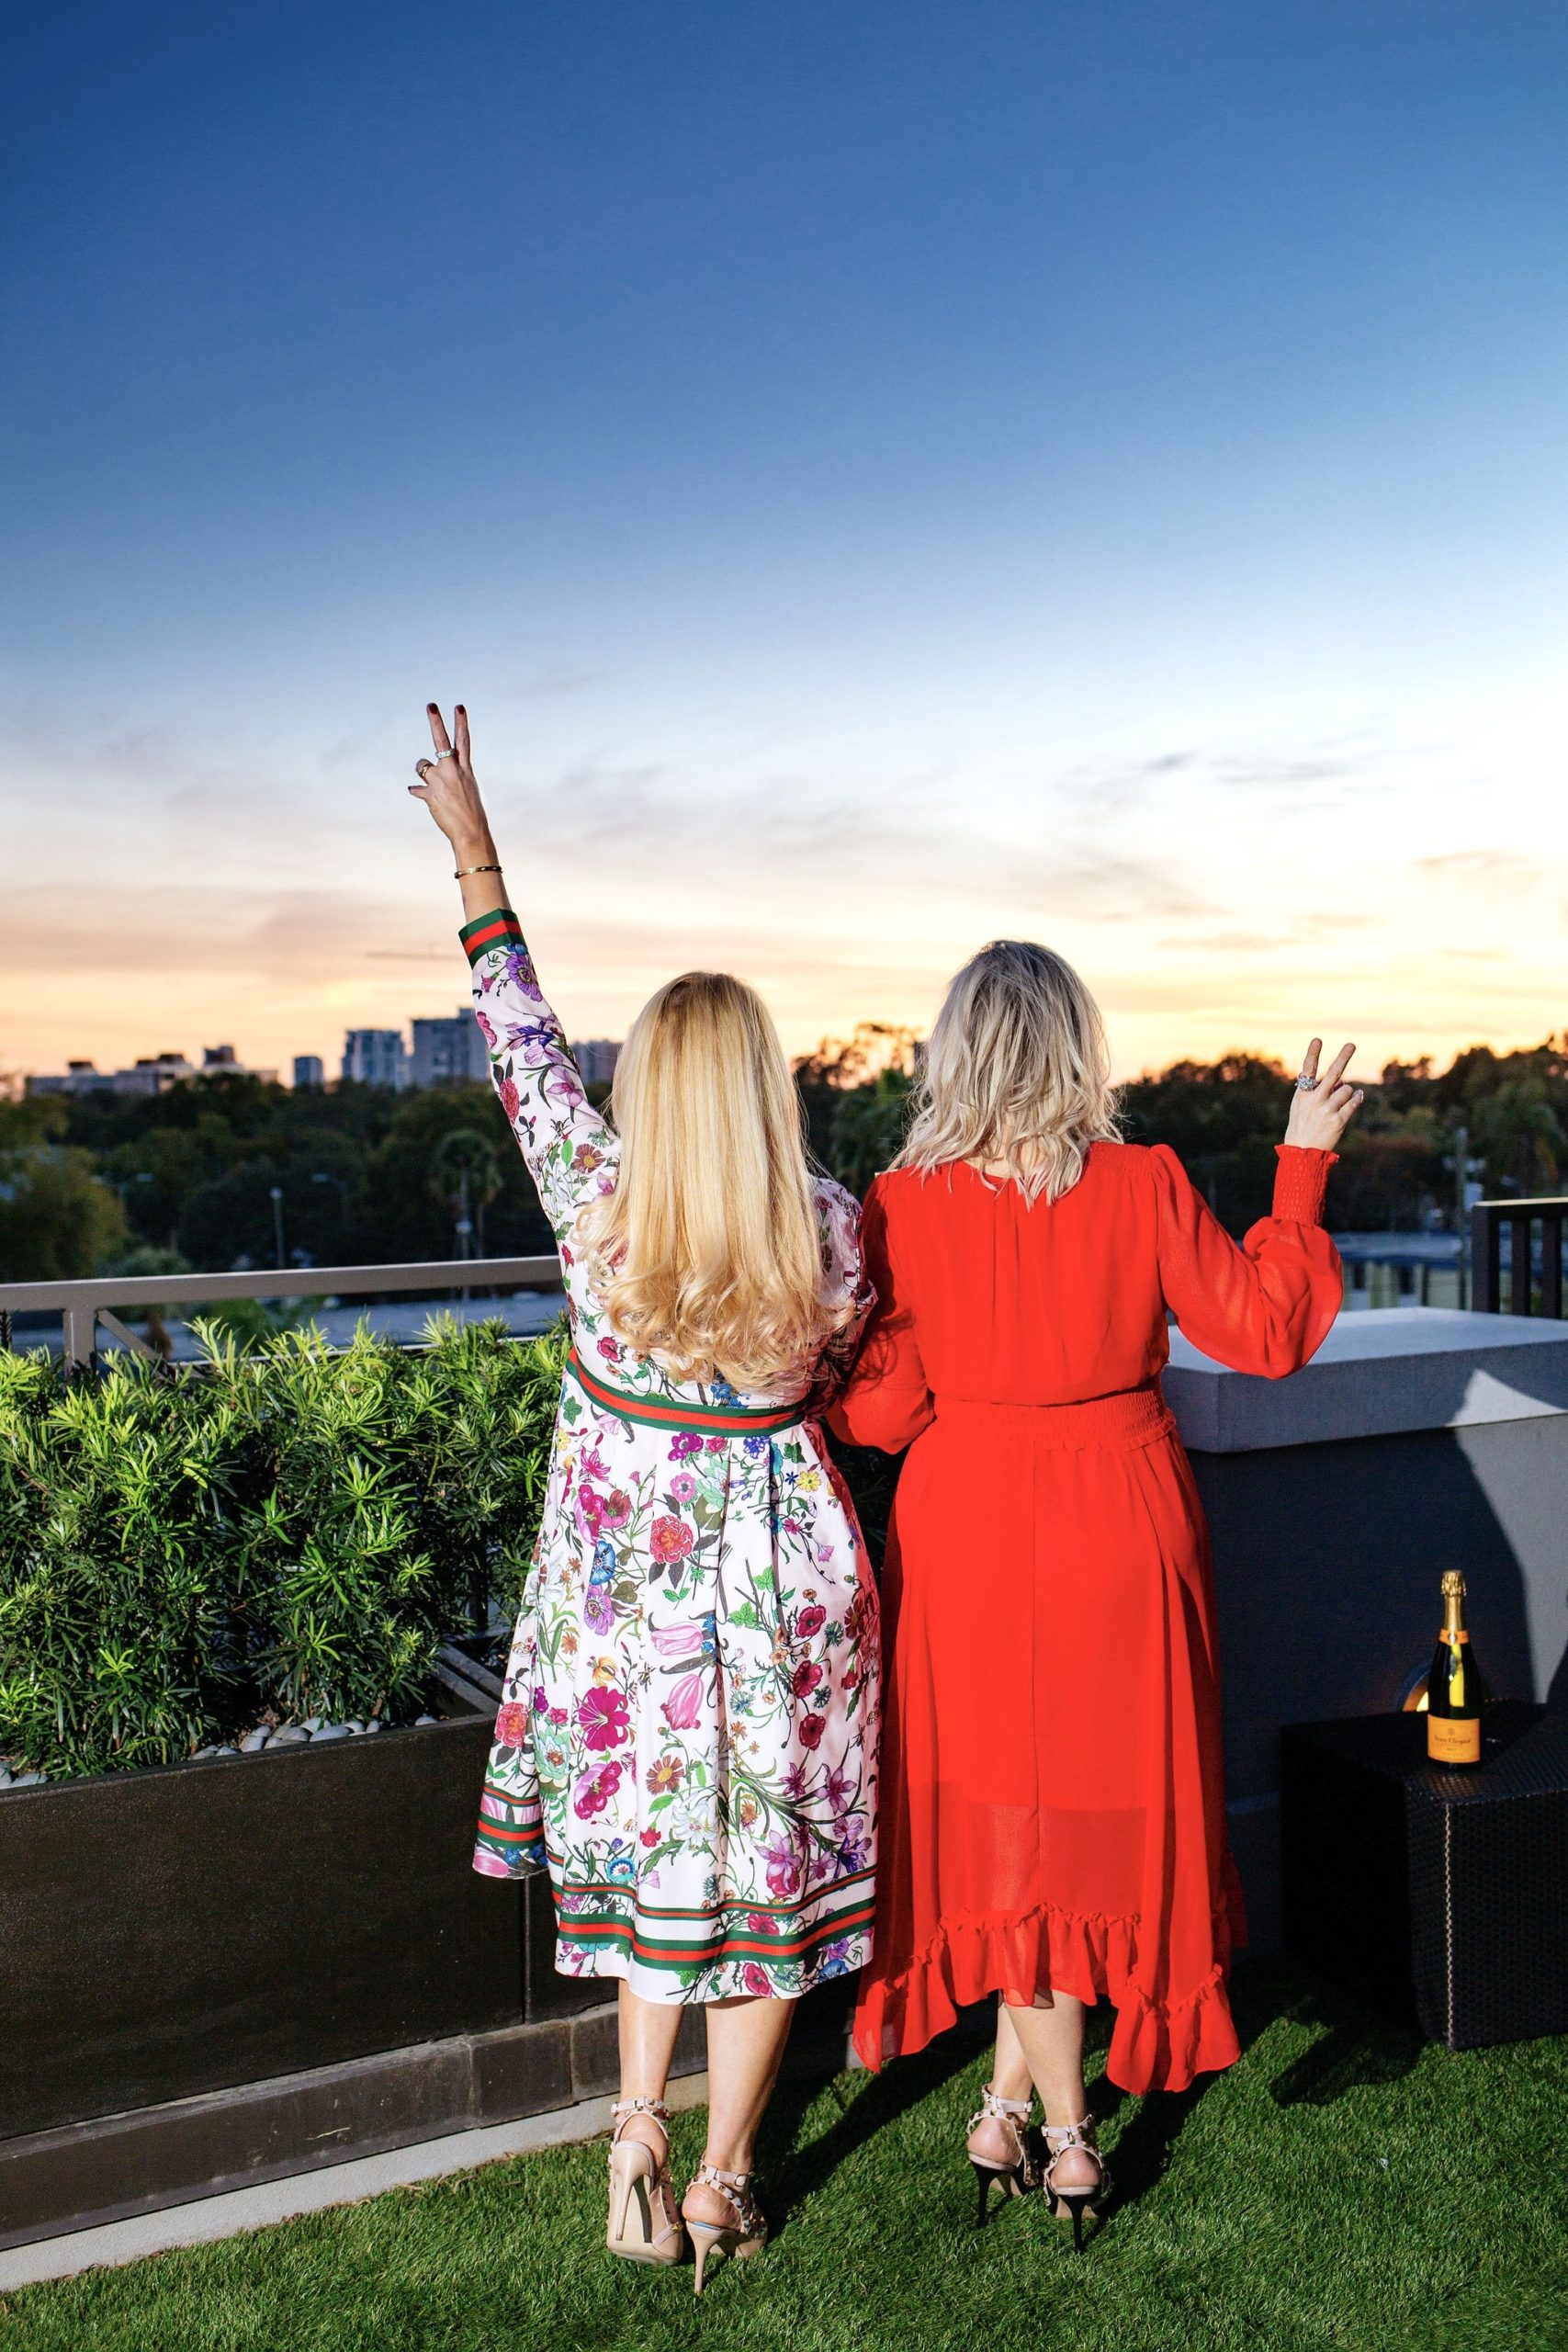 Jenn Truman Fashion and Style Blogger @jtstjtst11 is standing admiring the beautiful sunset skyline at Edge Rooftop Cocktail Lounge Epicurean Hotel, Autograph Collection. She is wearing a pink floral dress from amazon fashion and nude studded heels from amazon. She's holding the peace sign up with her first two fingers admiring the sunset.